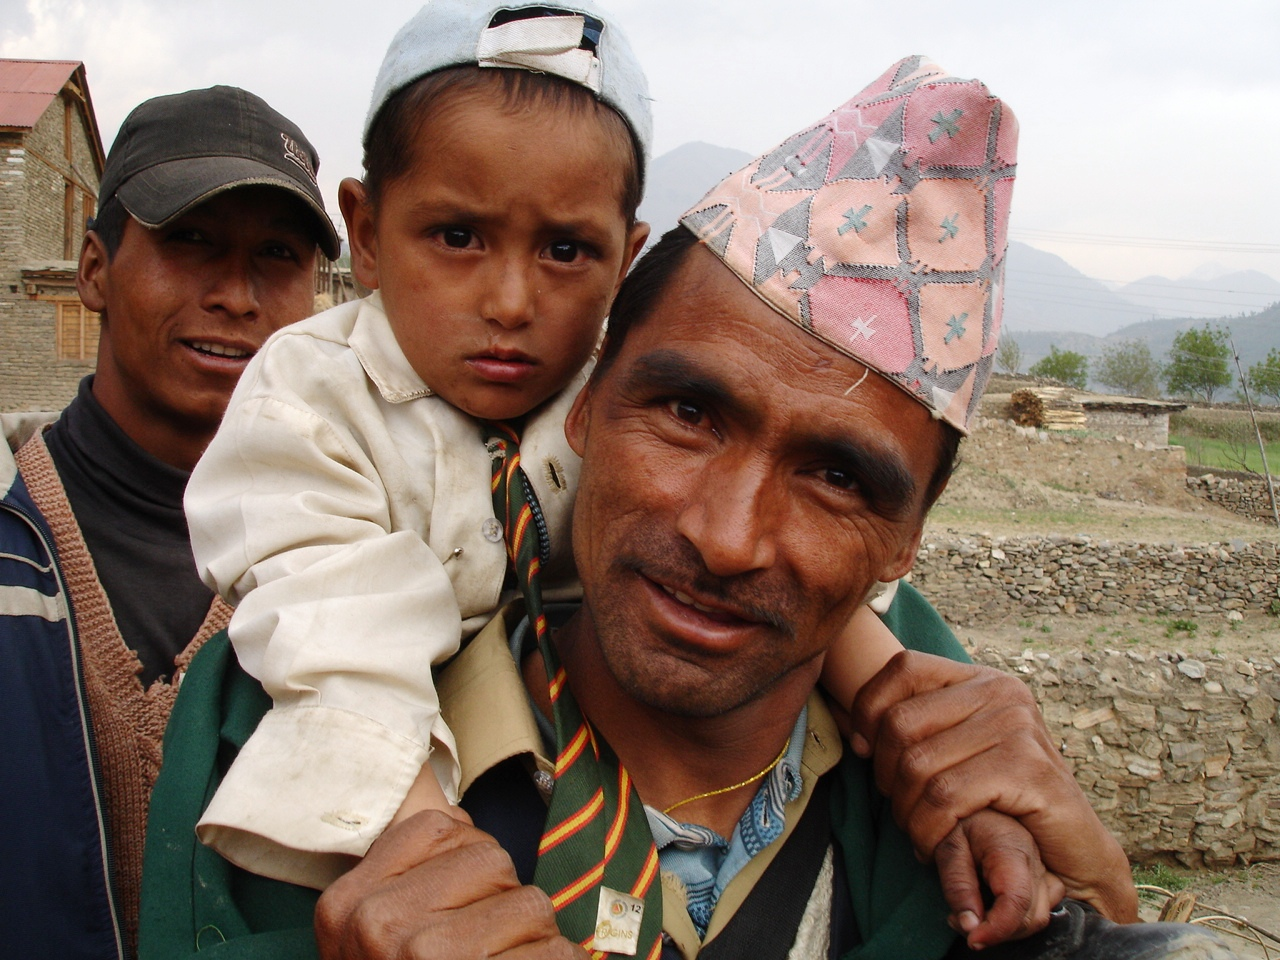 A boy and his father in Nepal's remote Jumla District